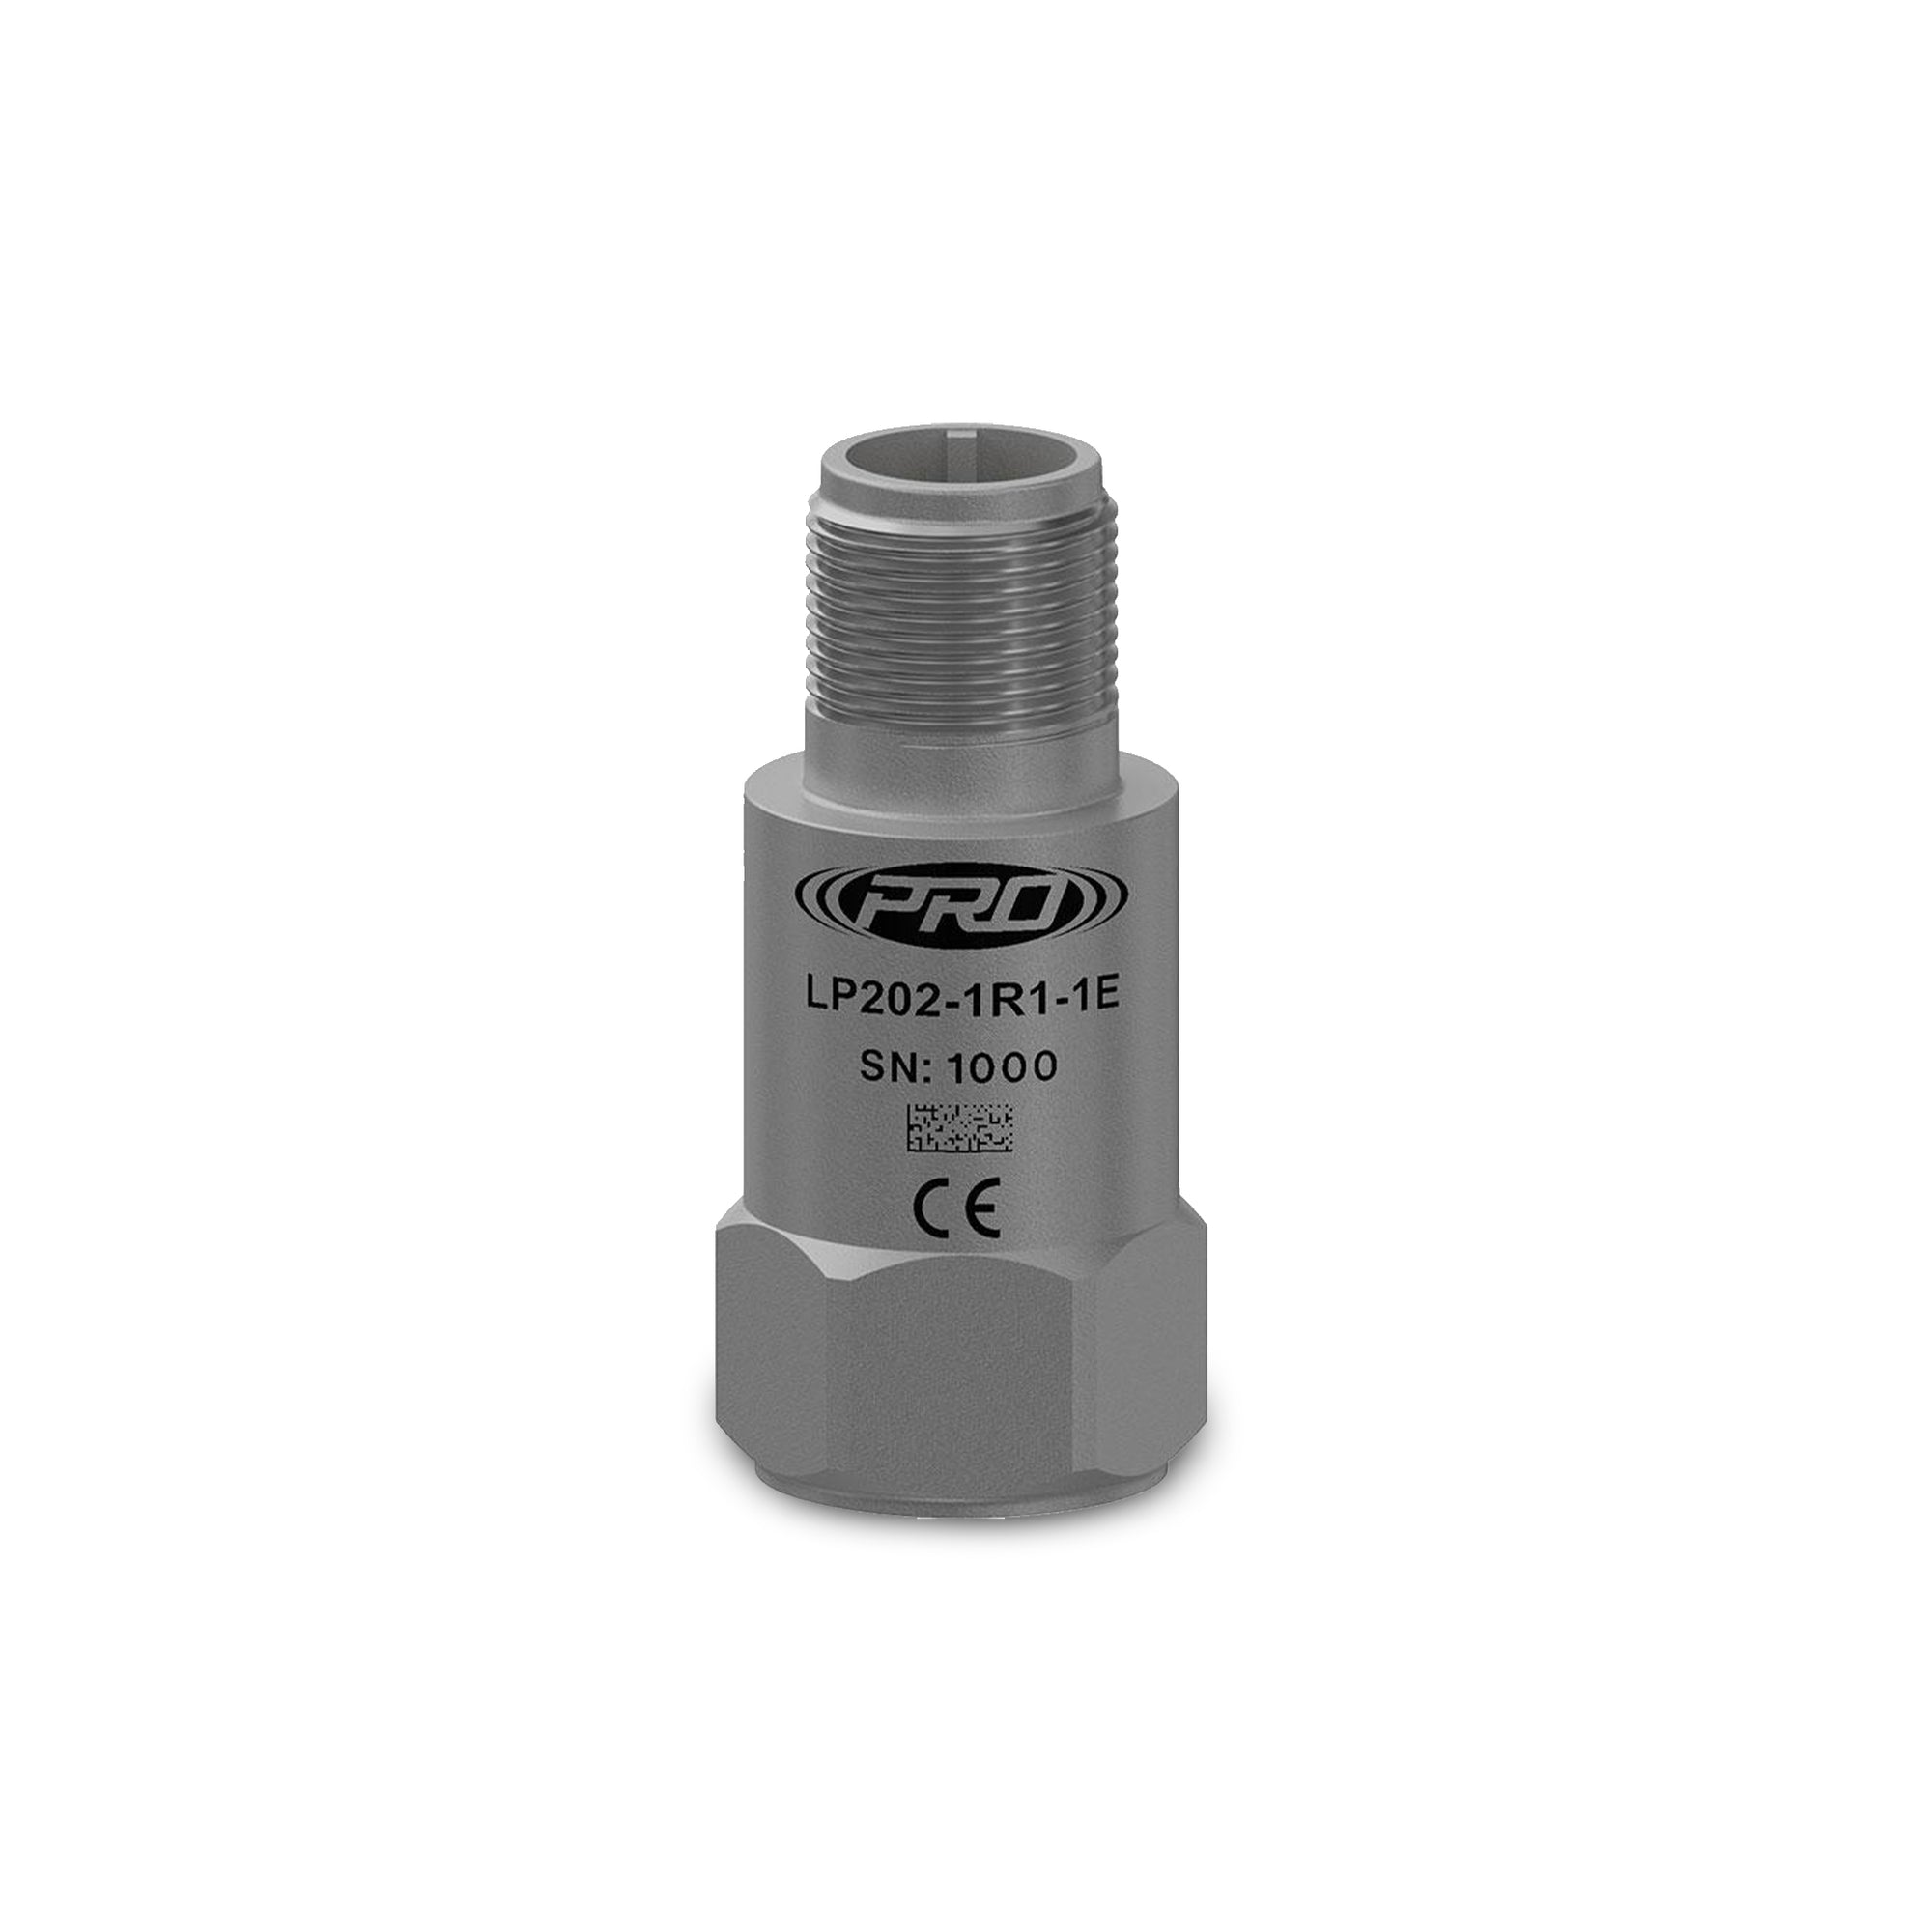 M/LP202-3R1-1E 0-10mm/s FS 4-20mA vibration transmitter